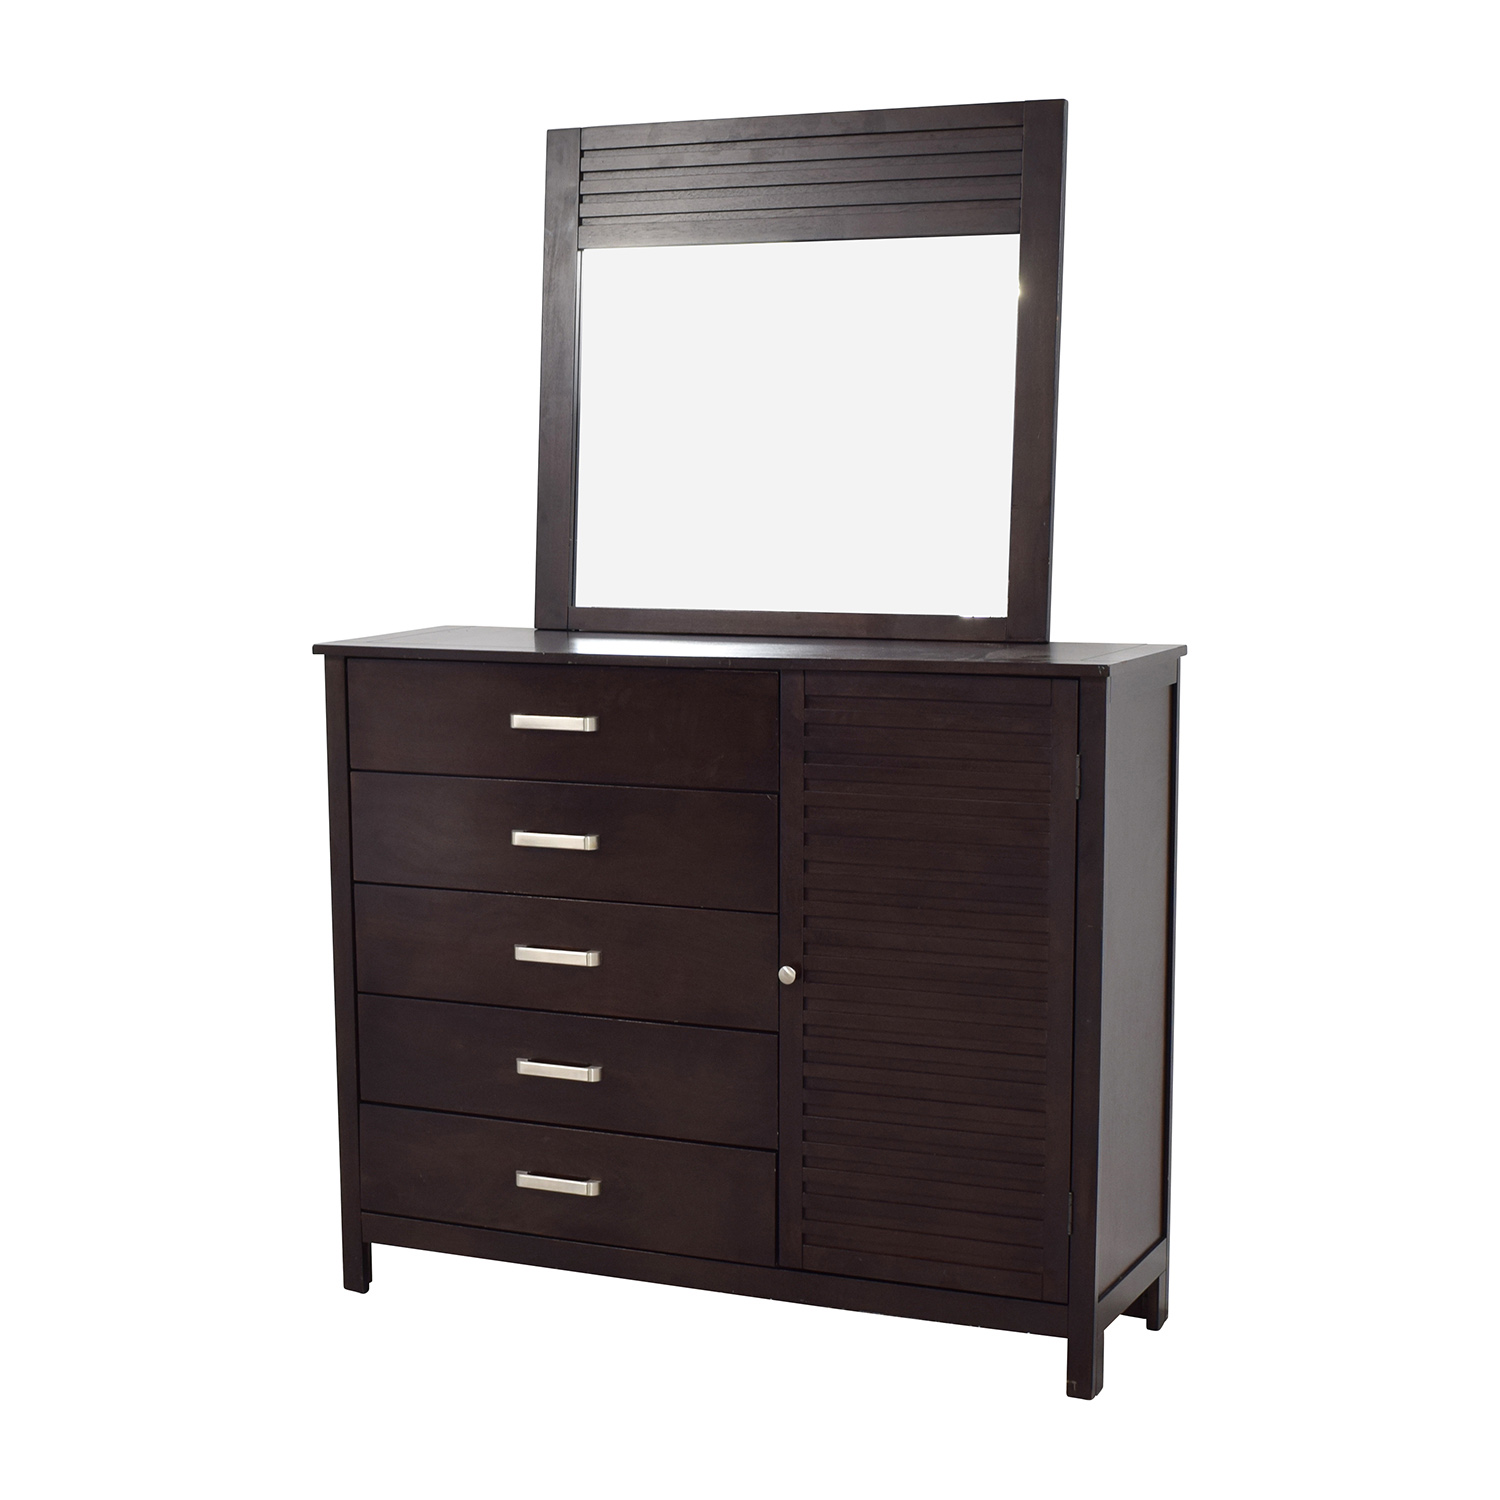 Rooms to Go Espresso Grove Five-Drawer Dresser with Mirror Rooms To Go